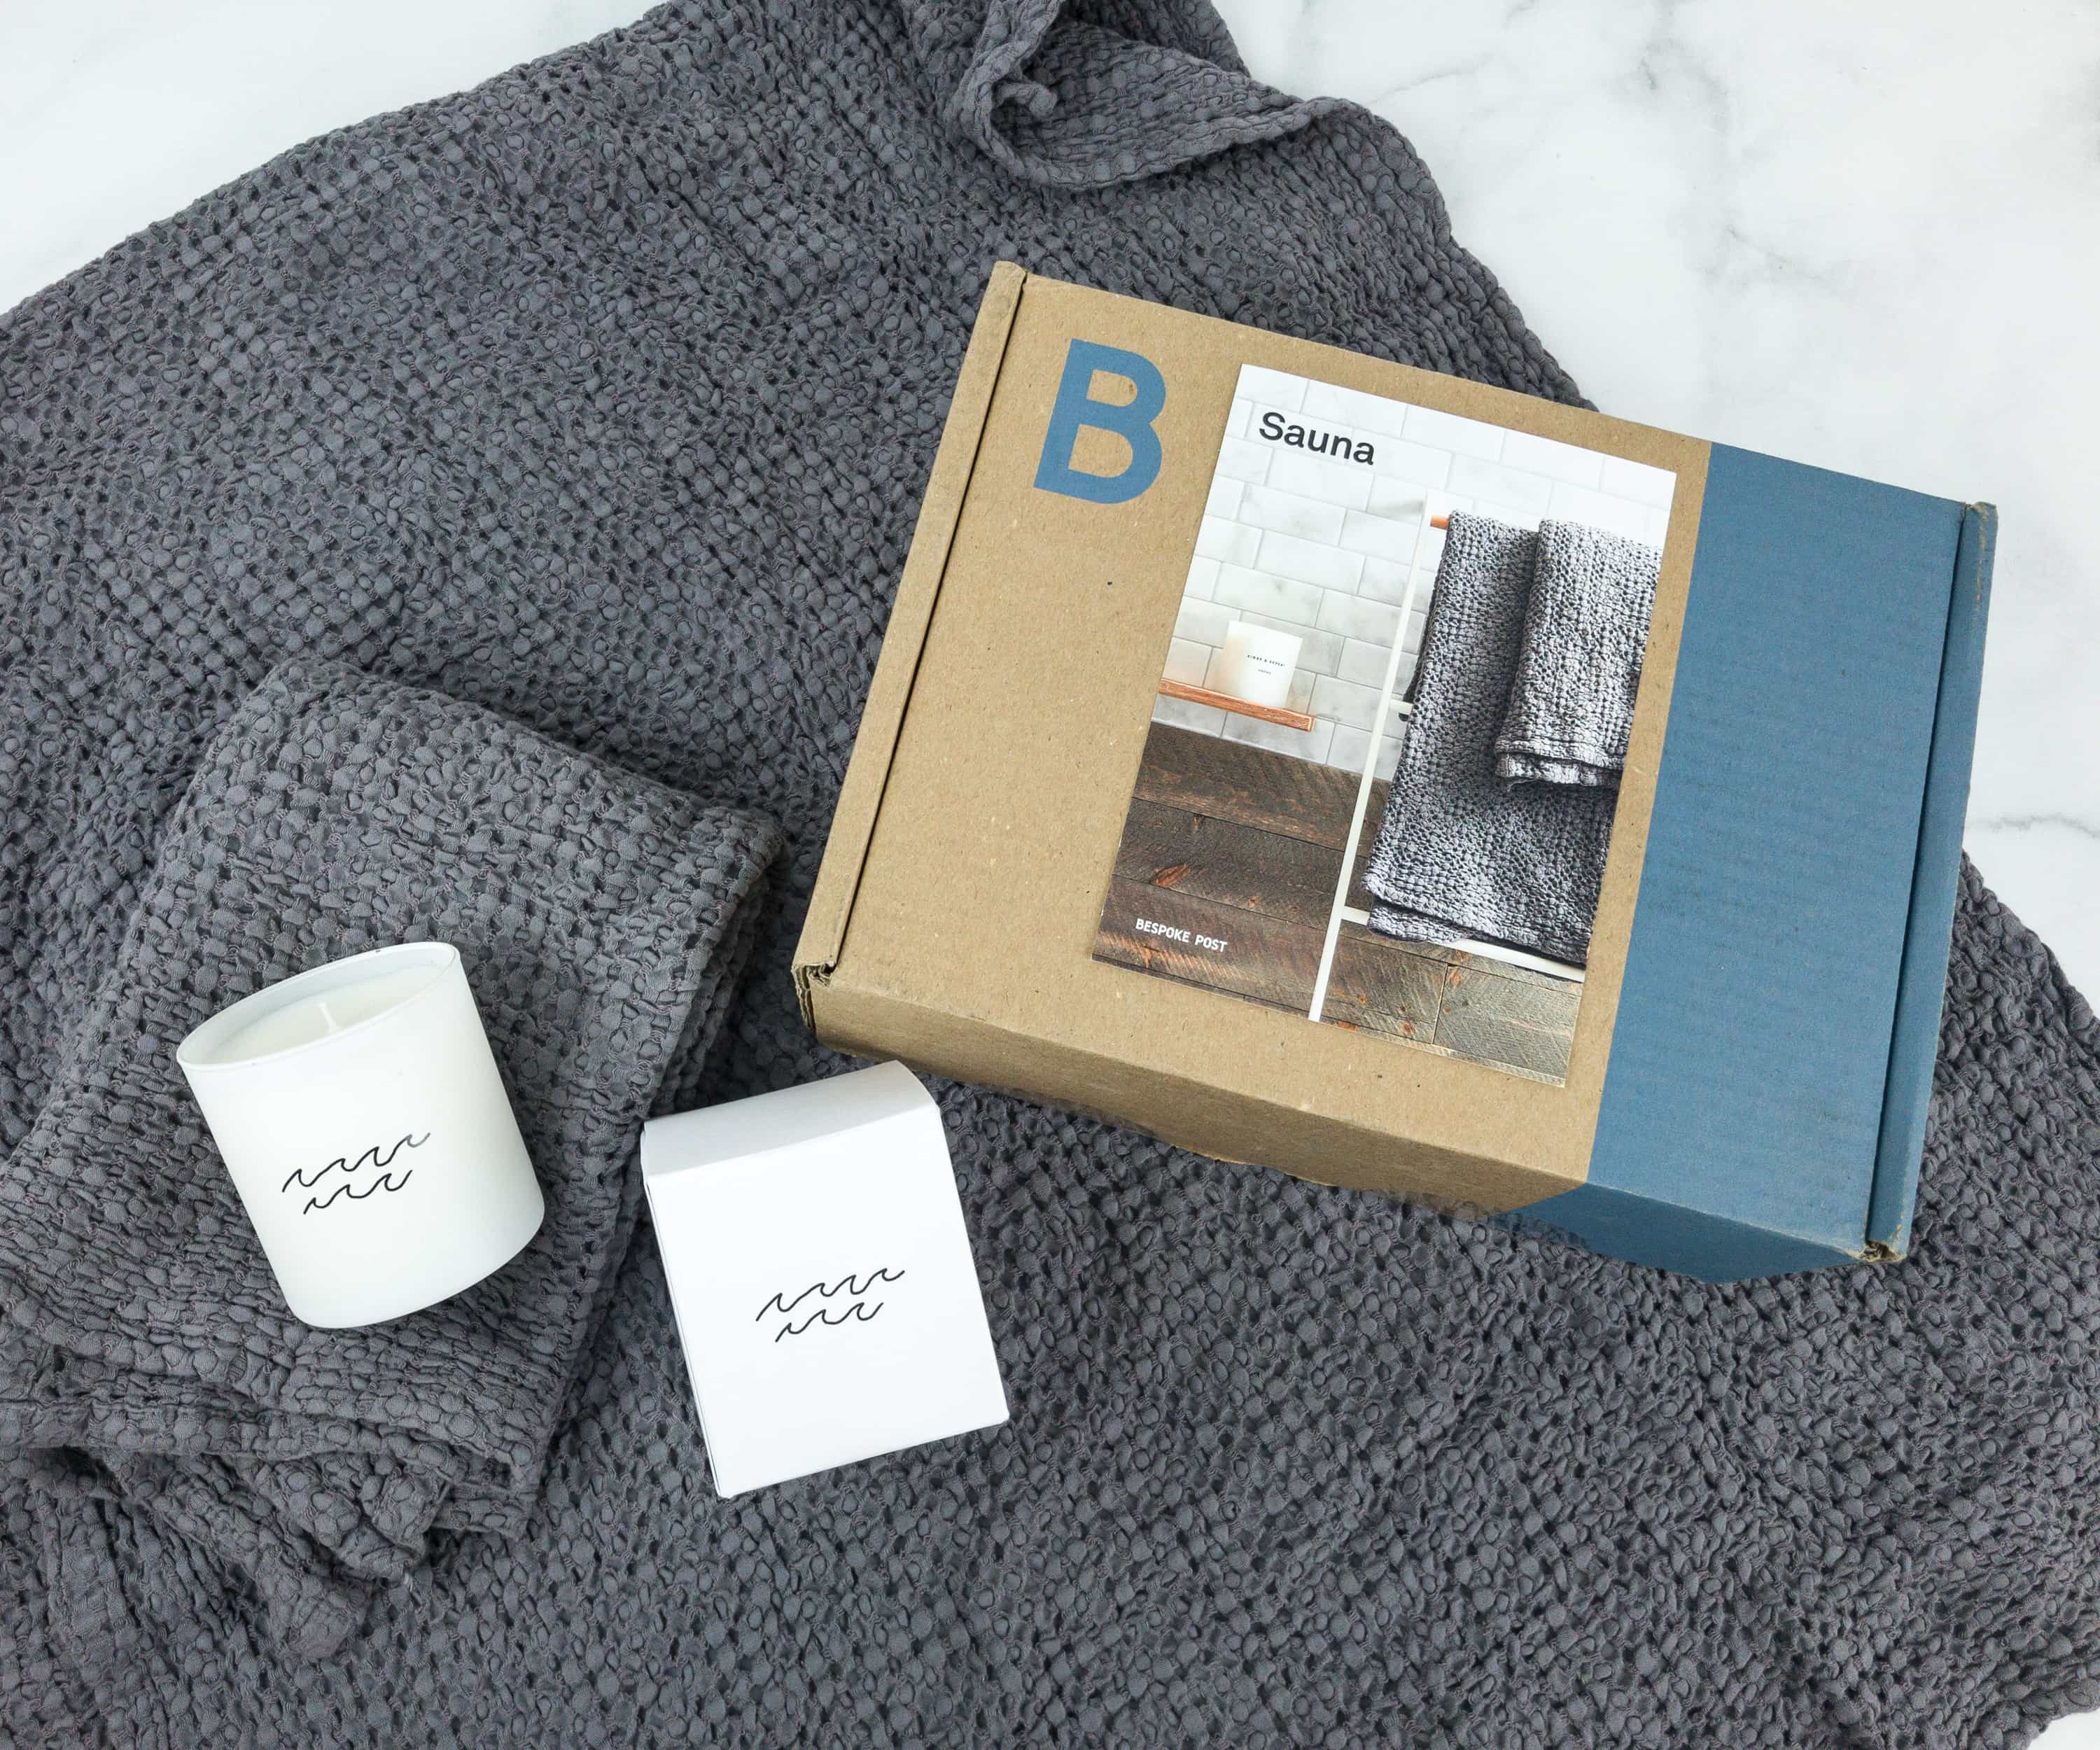 Bespoke Post SAUNA Box Review & Coupon – May 2019